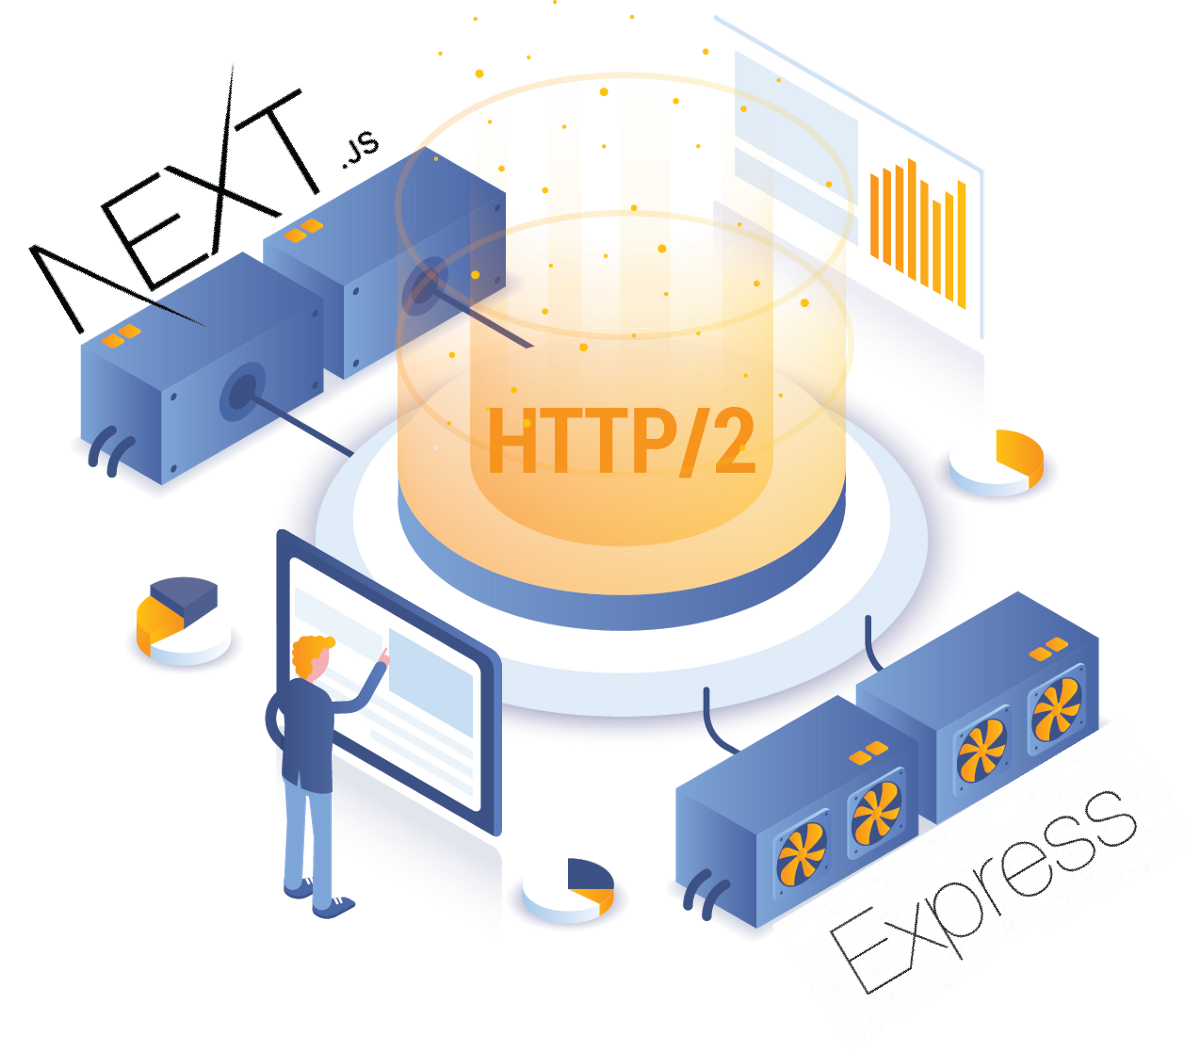 Using HTTP/2 with Next.js & Express